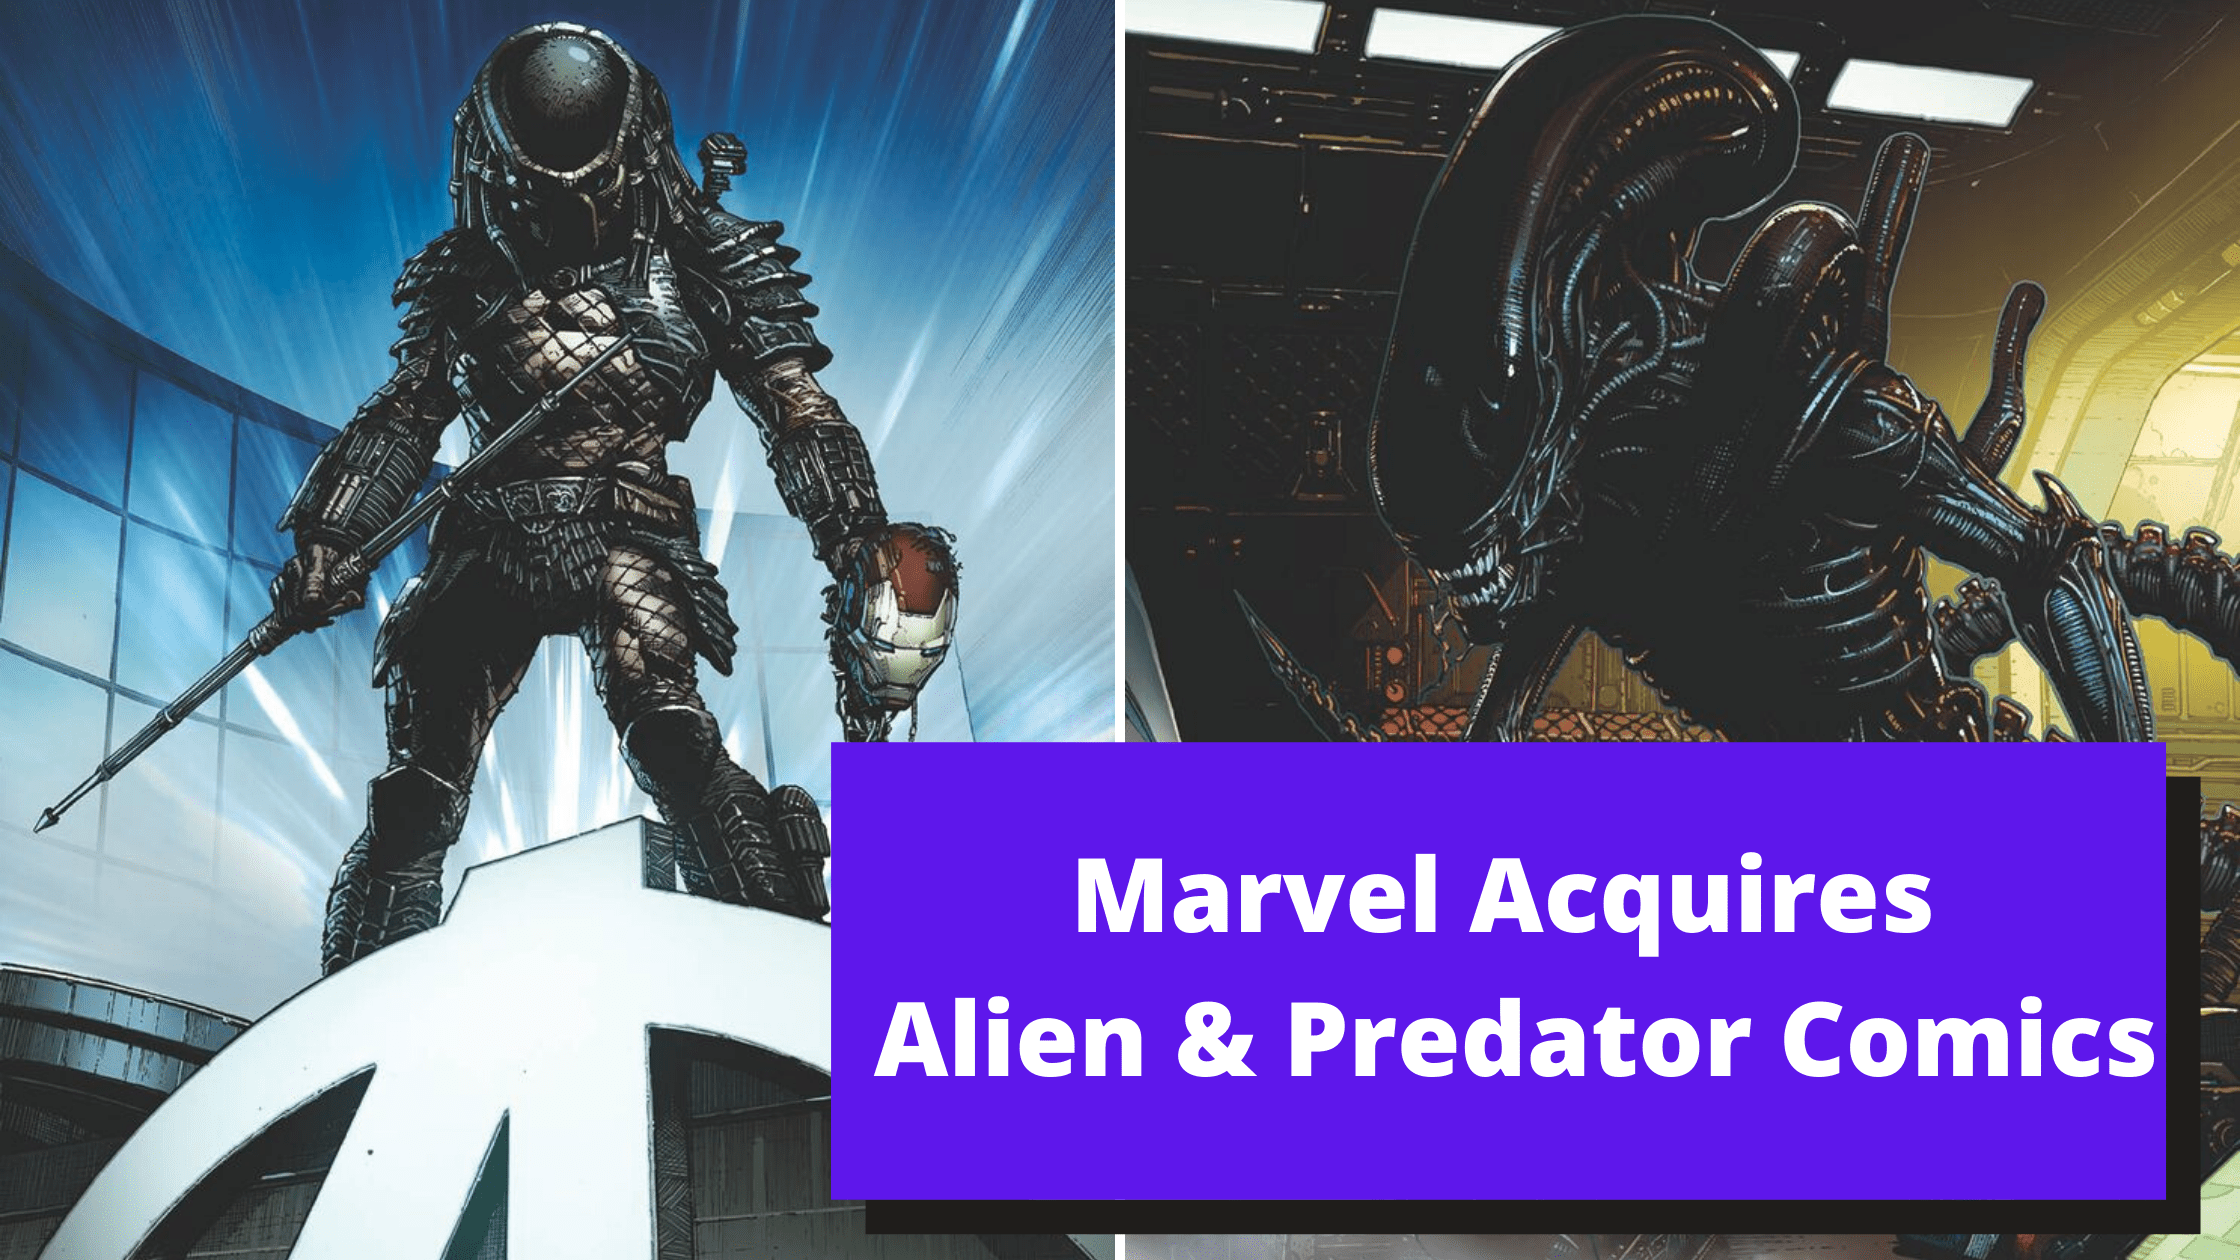 Marvel-Acquires-Alien-Predator-Comics